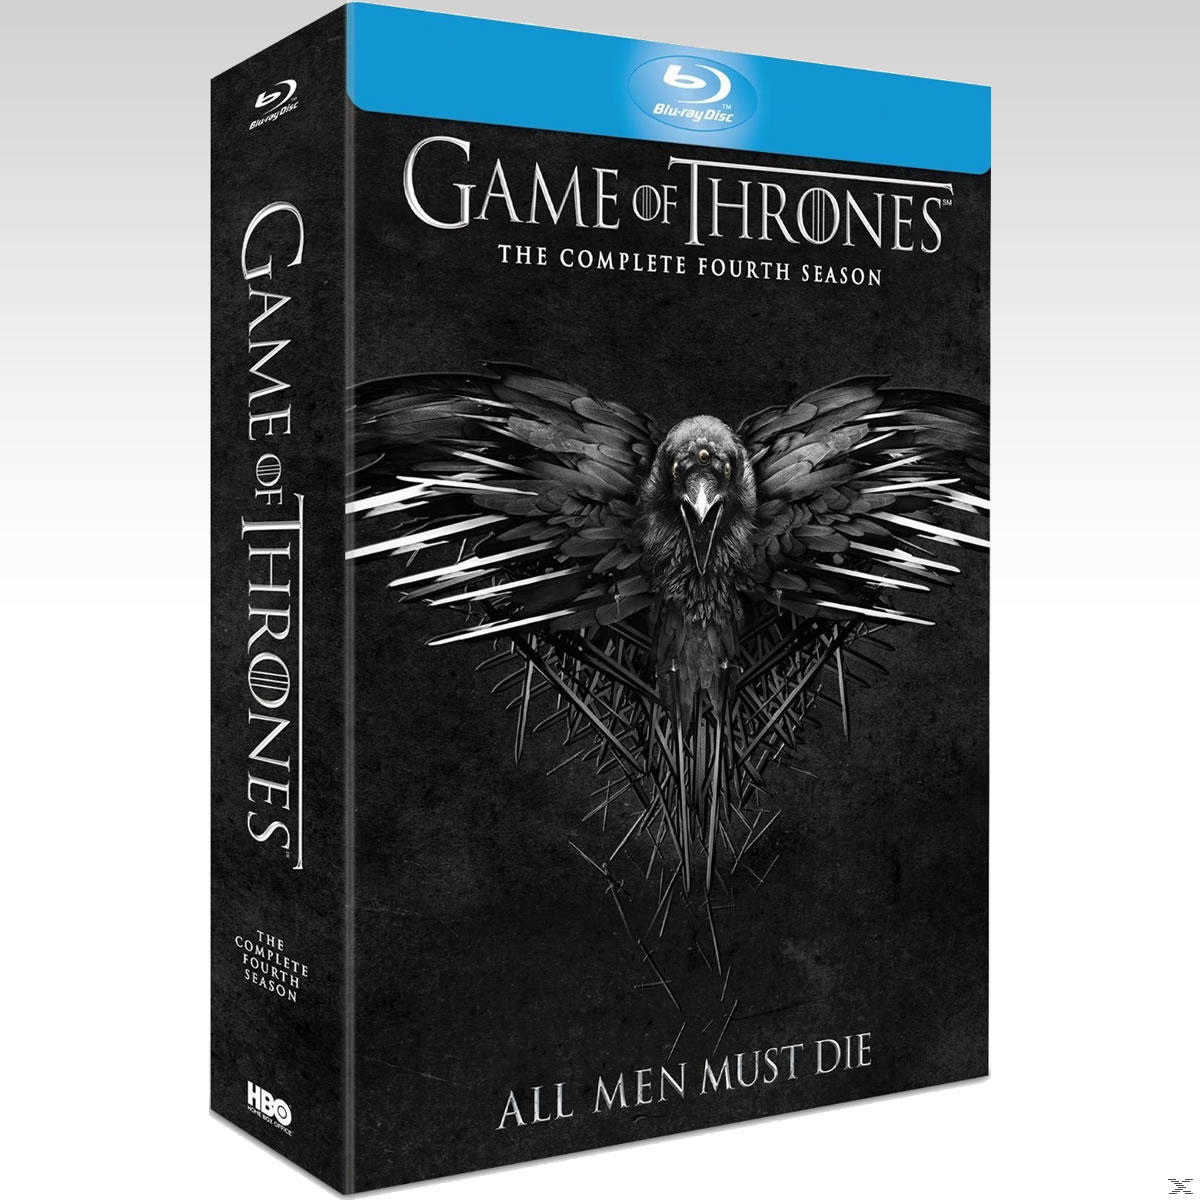 GAME OF THRONES S4 [BLU RAY]